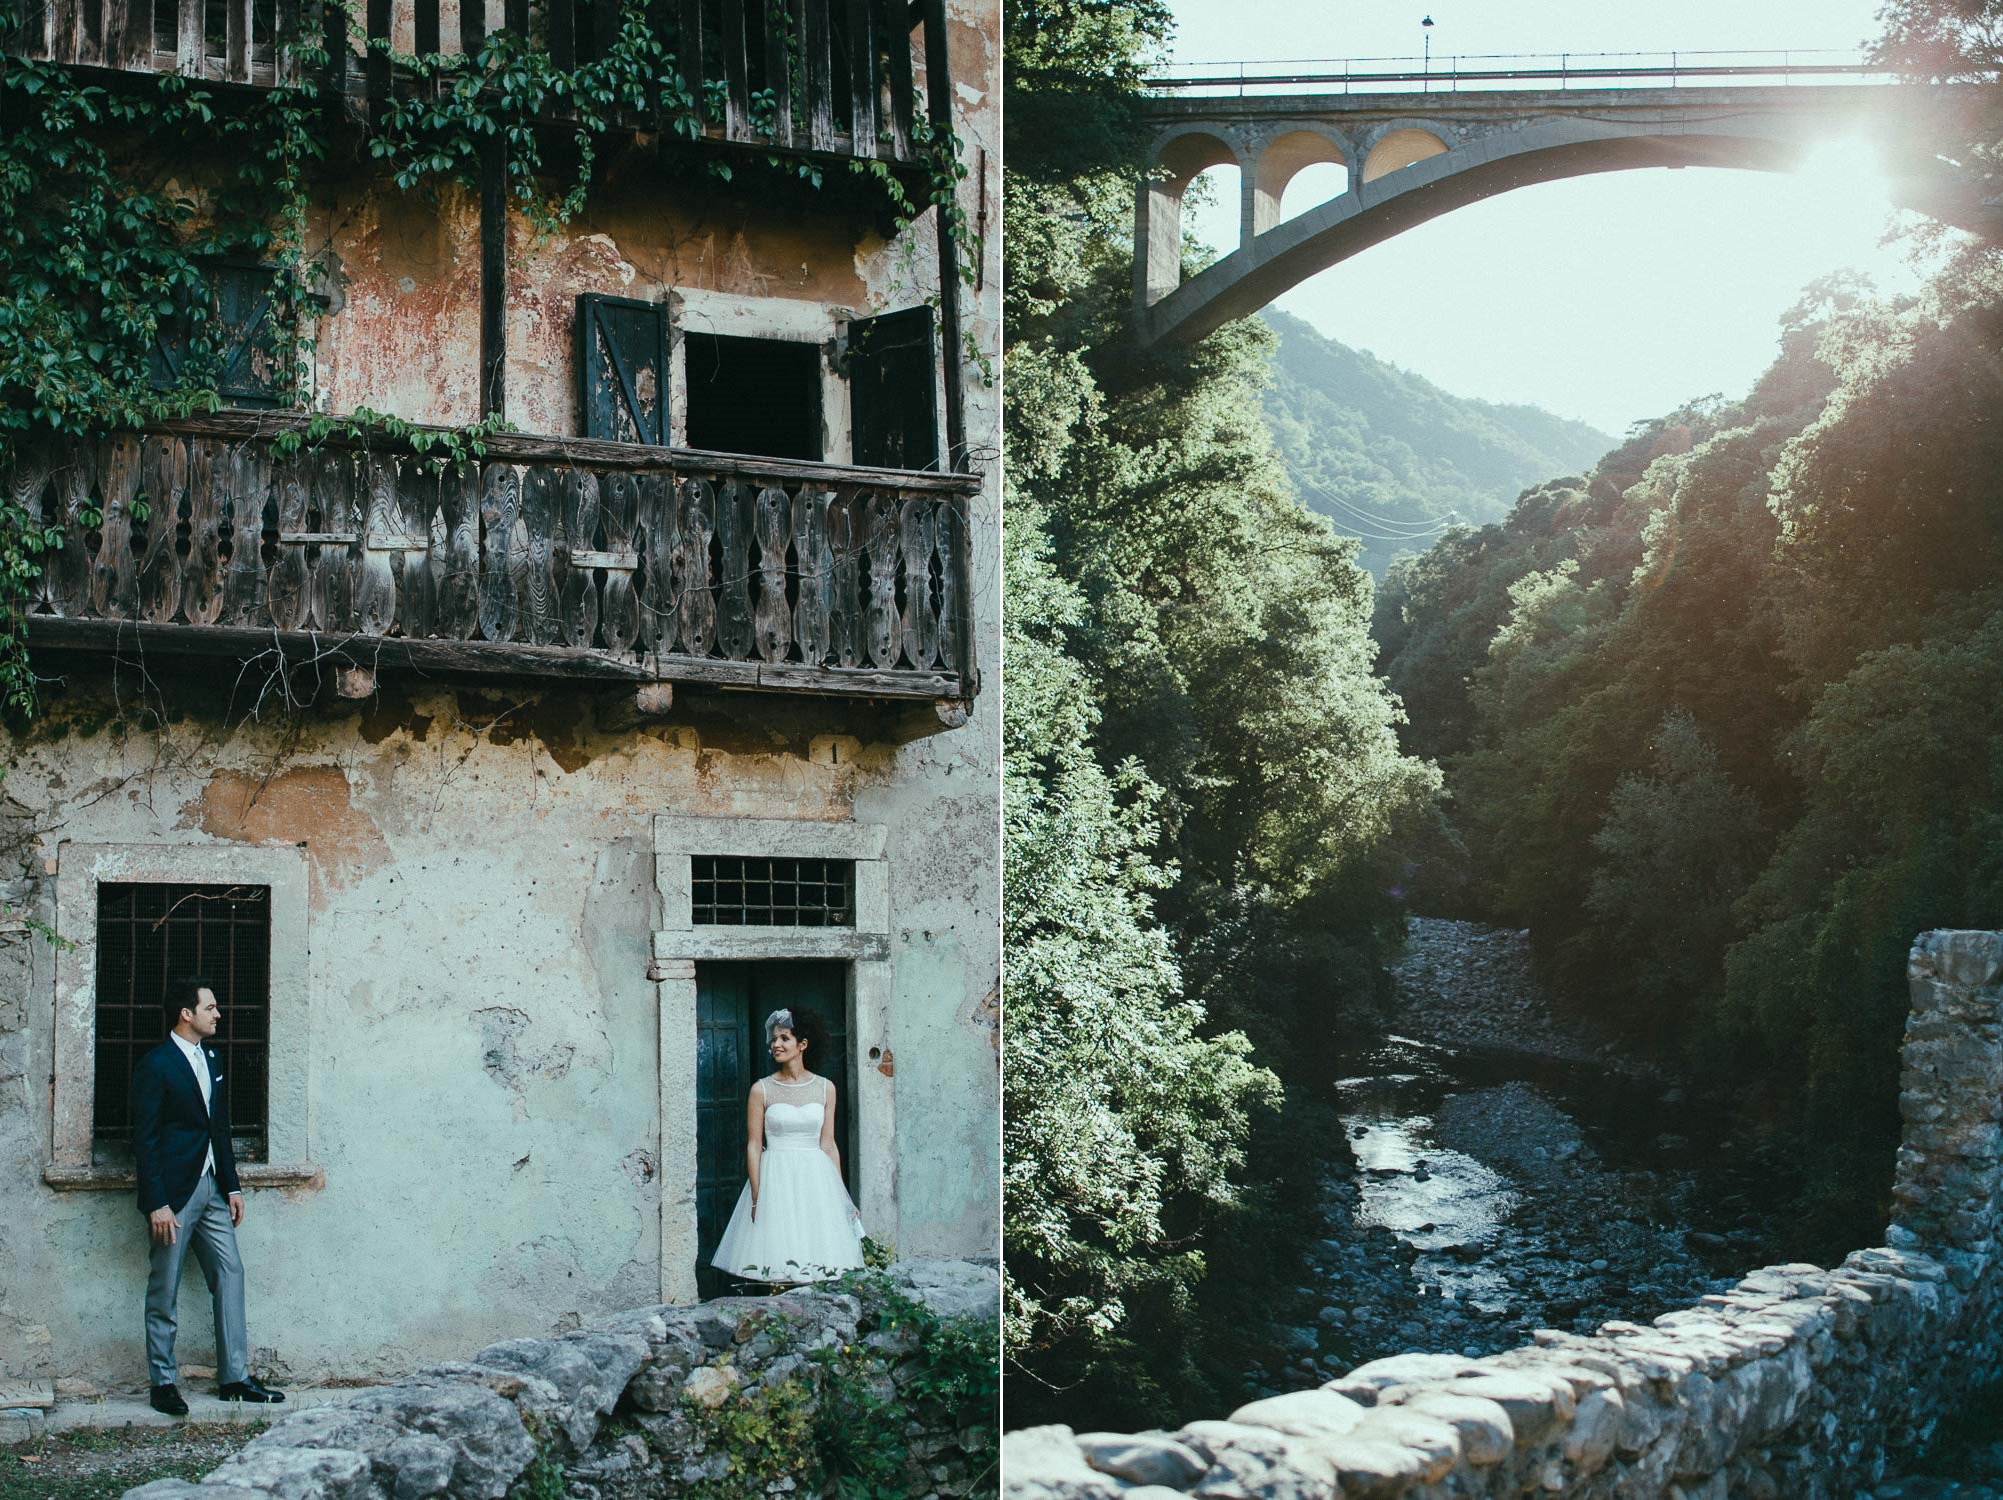 elopement-in-italy (6).jpg